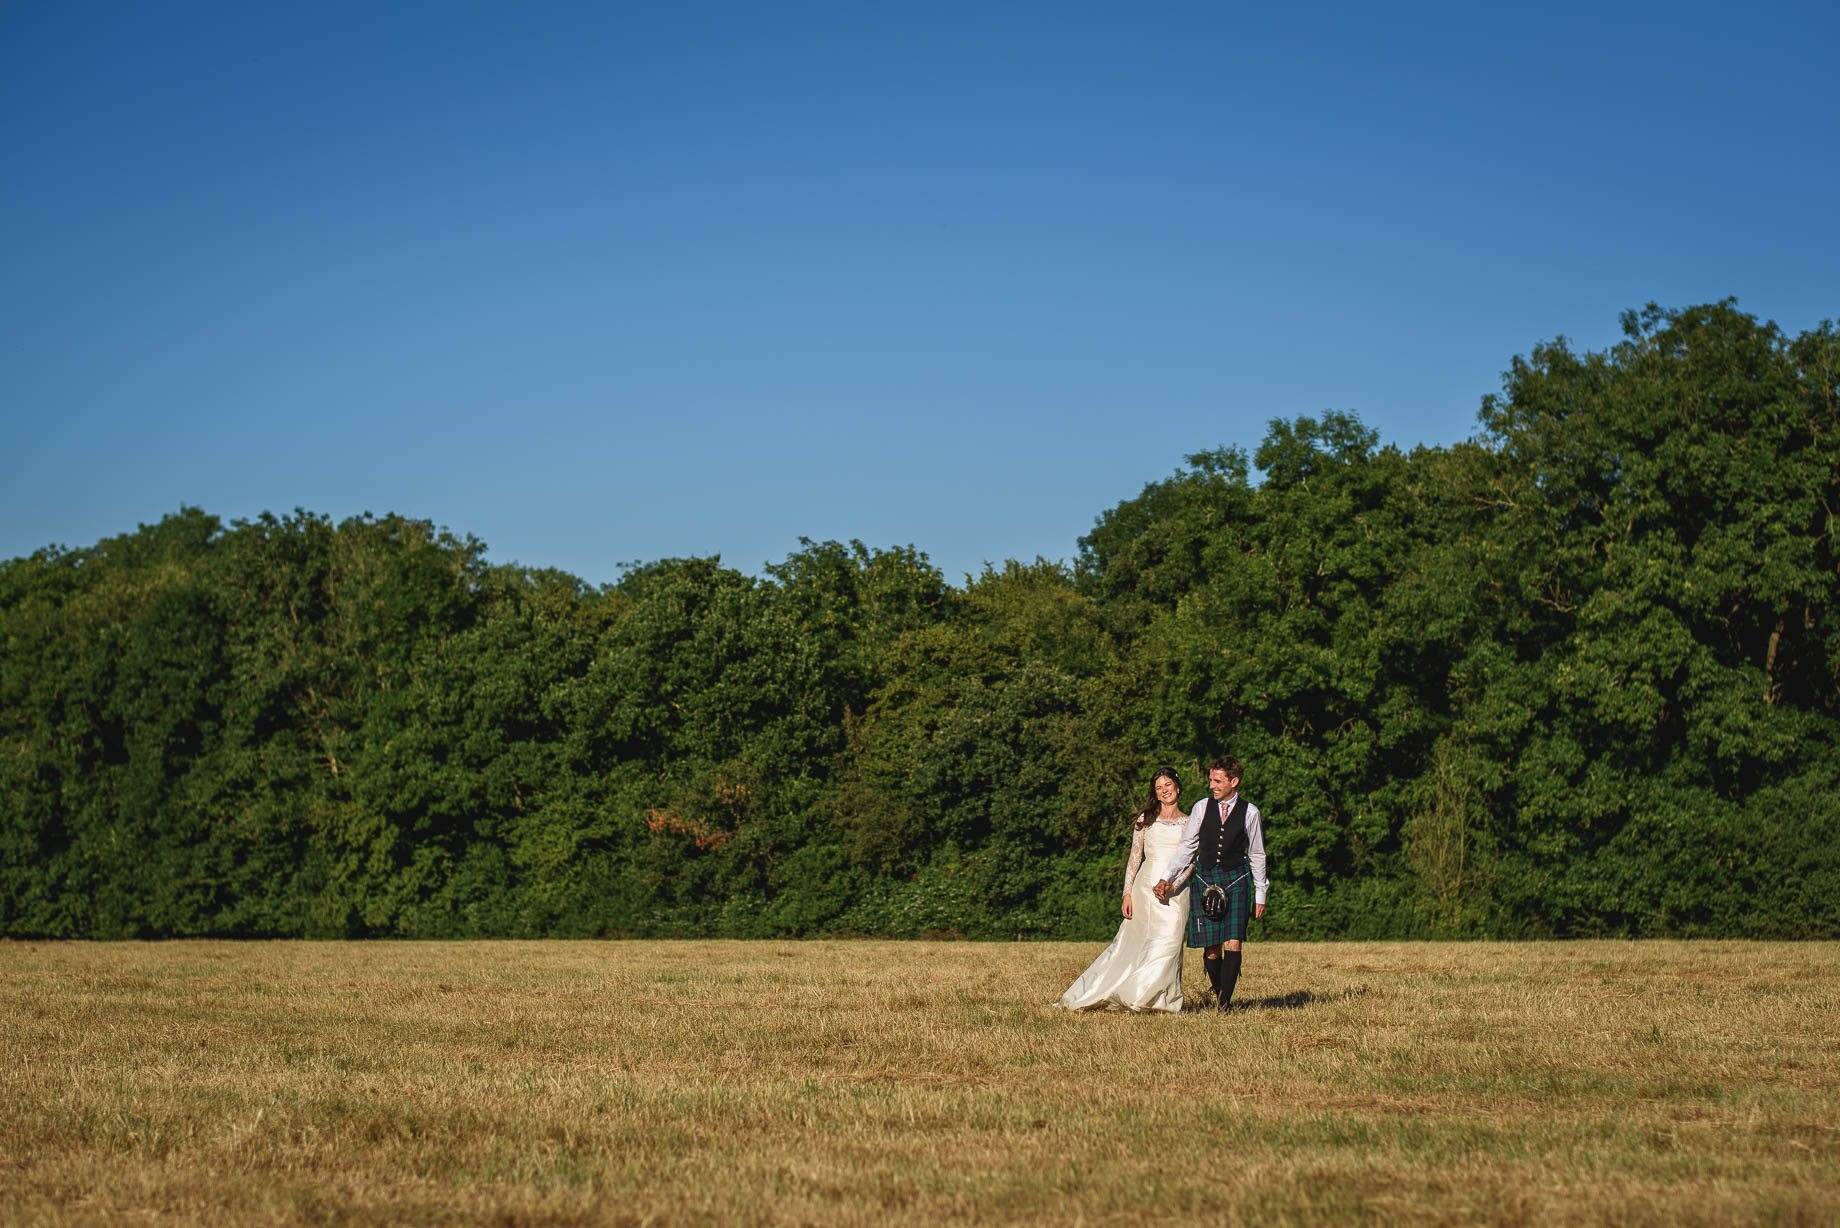 Gildings Barn wedding photography - Sarah and Steve (151 of 190)